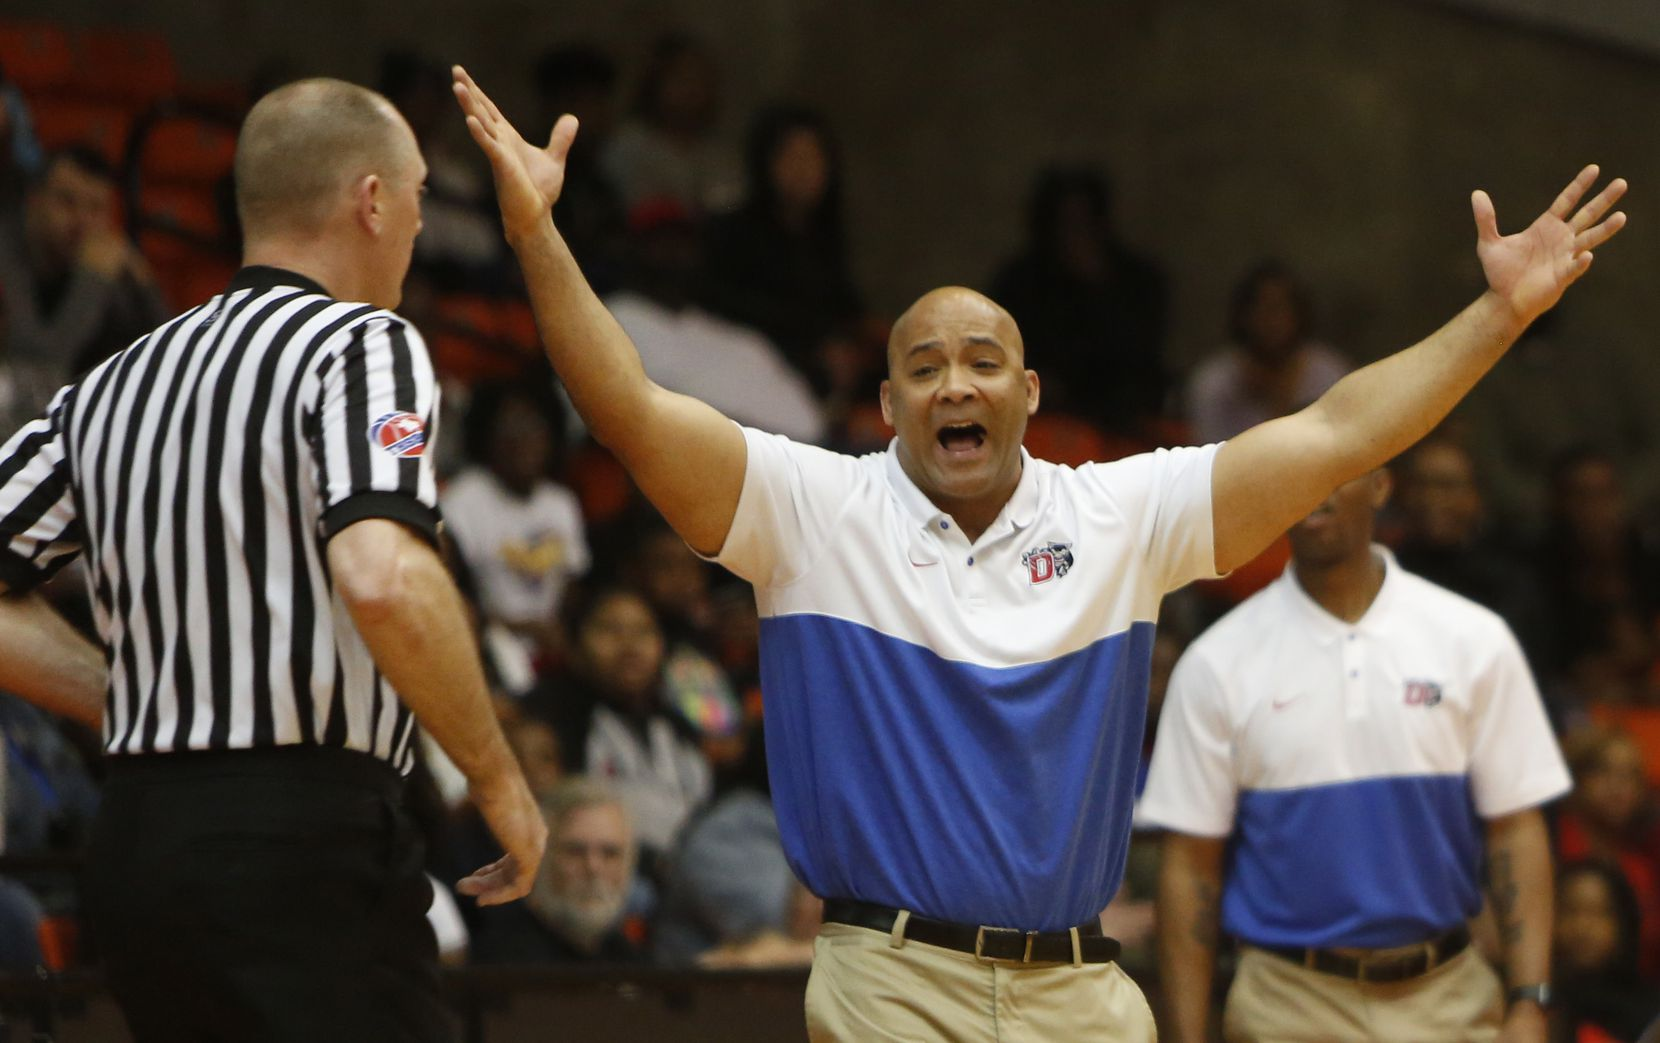 Duncanville head coach David Peavy question the lack of a call during first half action of their game against Odessa Permian. Duncanville won 59-43 to gain a berth in the UIL state tournament. The two teams played in the Class 6A Region 1 championship boys basketball playoff game at Wilkerson-Greines Activity Center in Fort Worth on March 7, 2020.